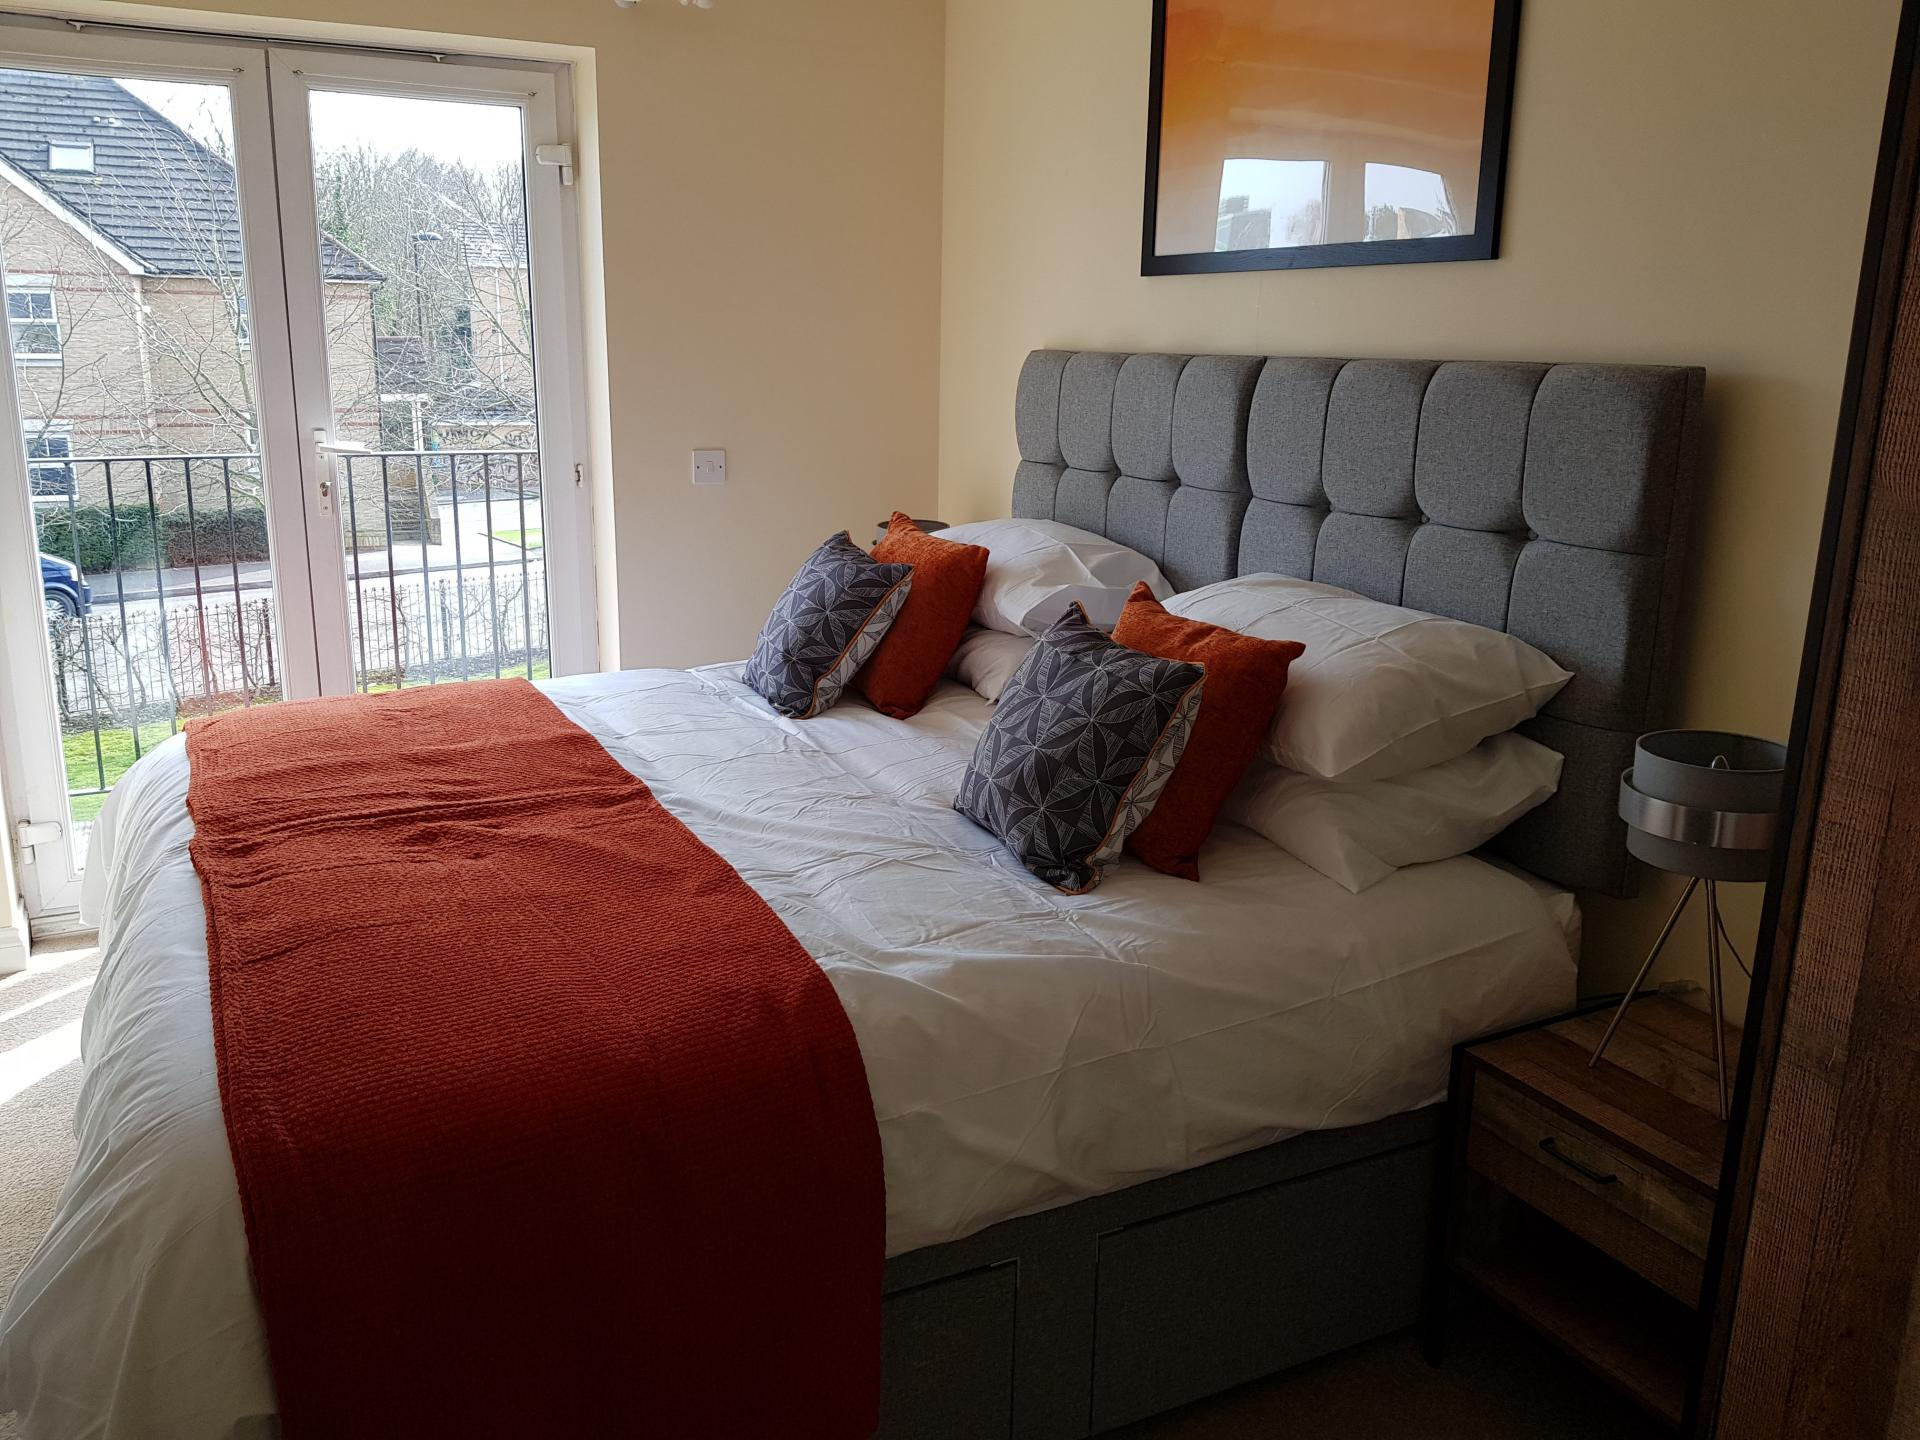 Bedroom at Le Tissier Court Apartment, The Polygon, Southampton